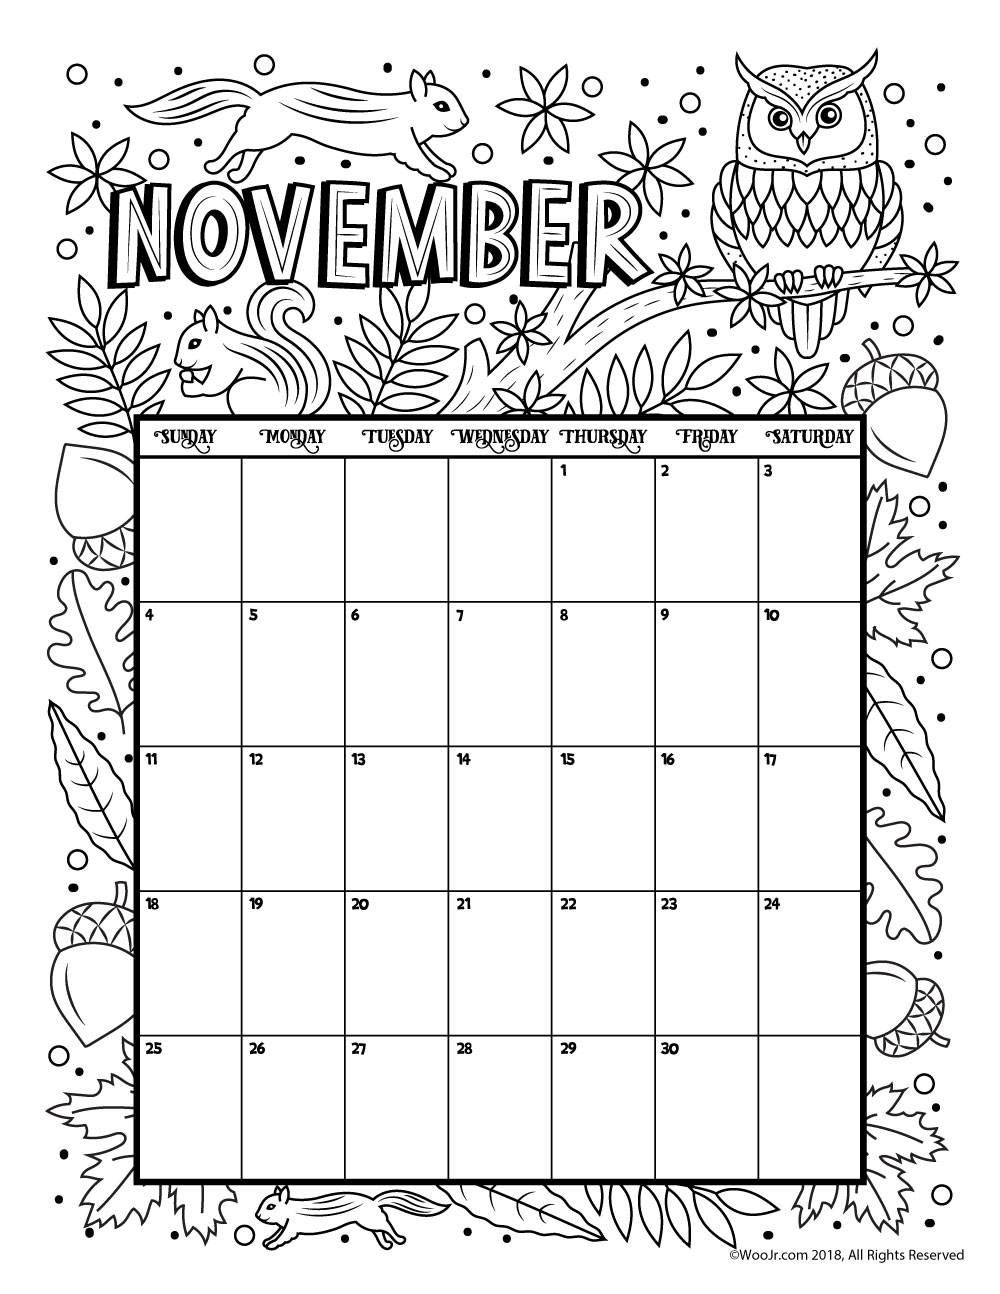 november 2018 coloring calendar page woo jr kids activities